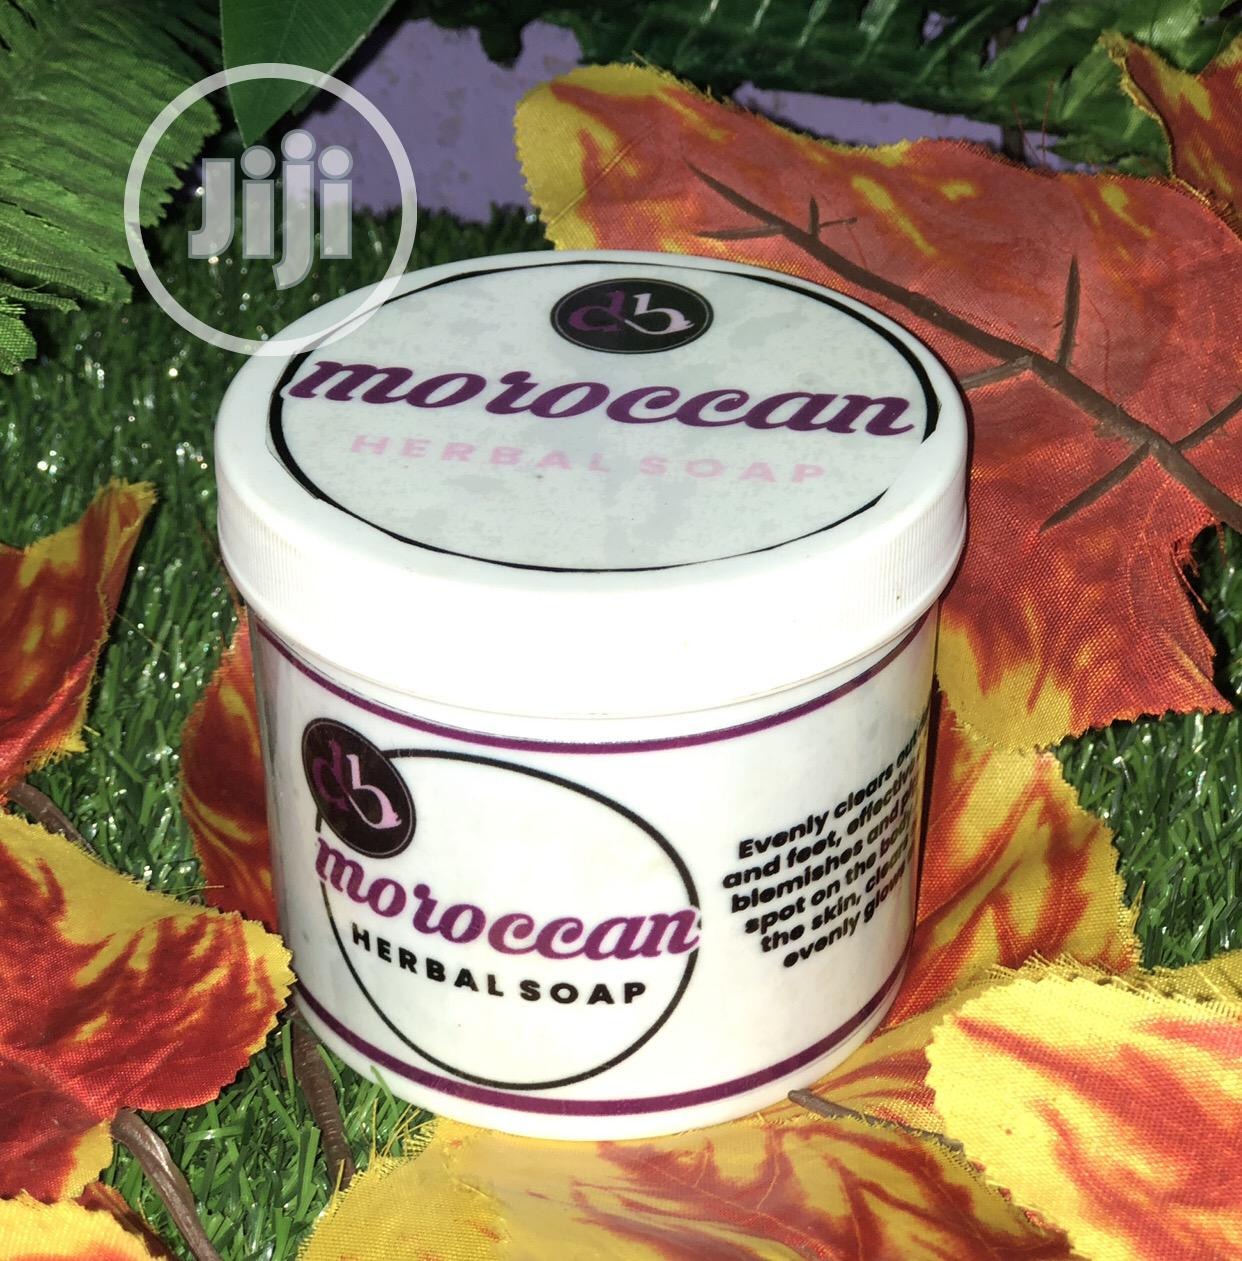 7days Moroccan Whitening Herbal Soap